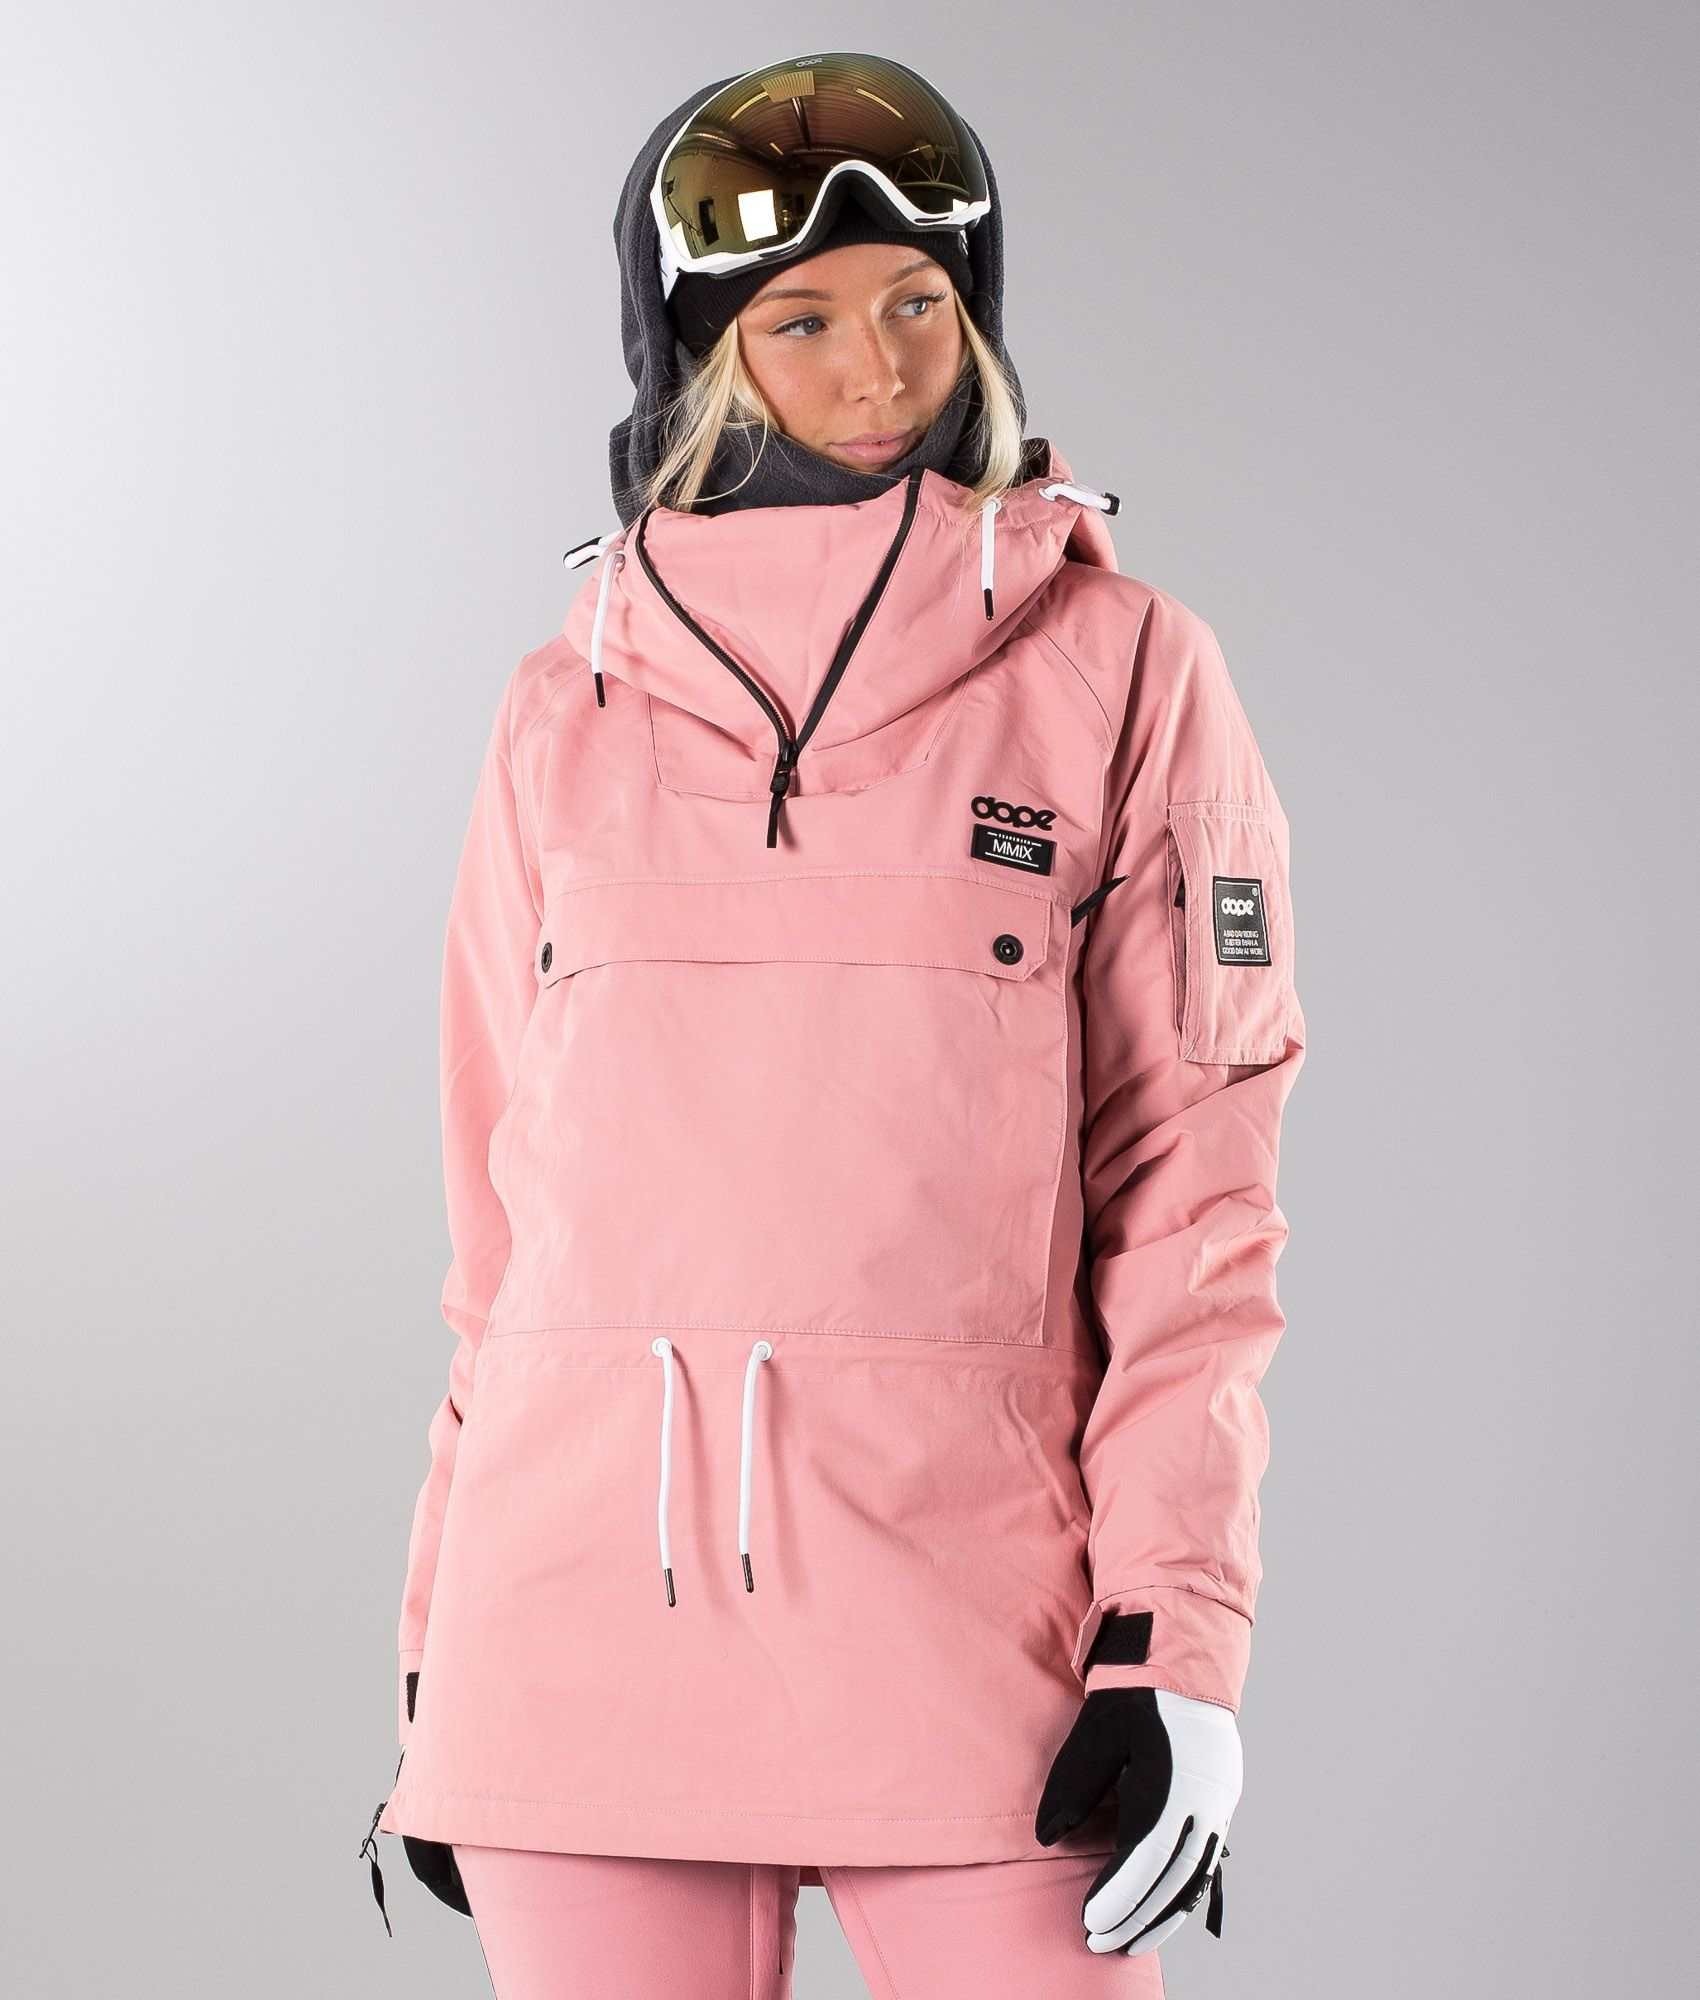 Buy Annok W Ski Jacket from Dope at Ridestore.com - Always free shipping 76fd89b28